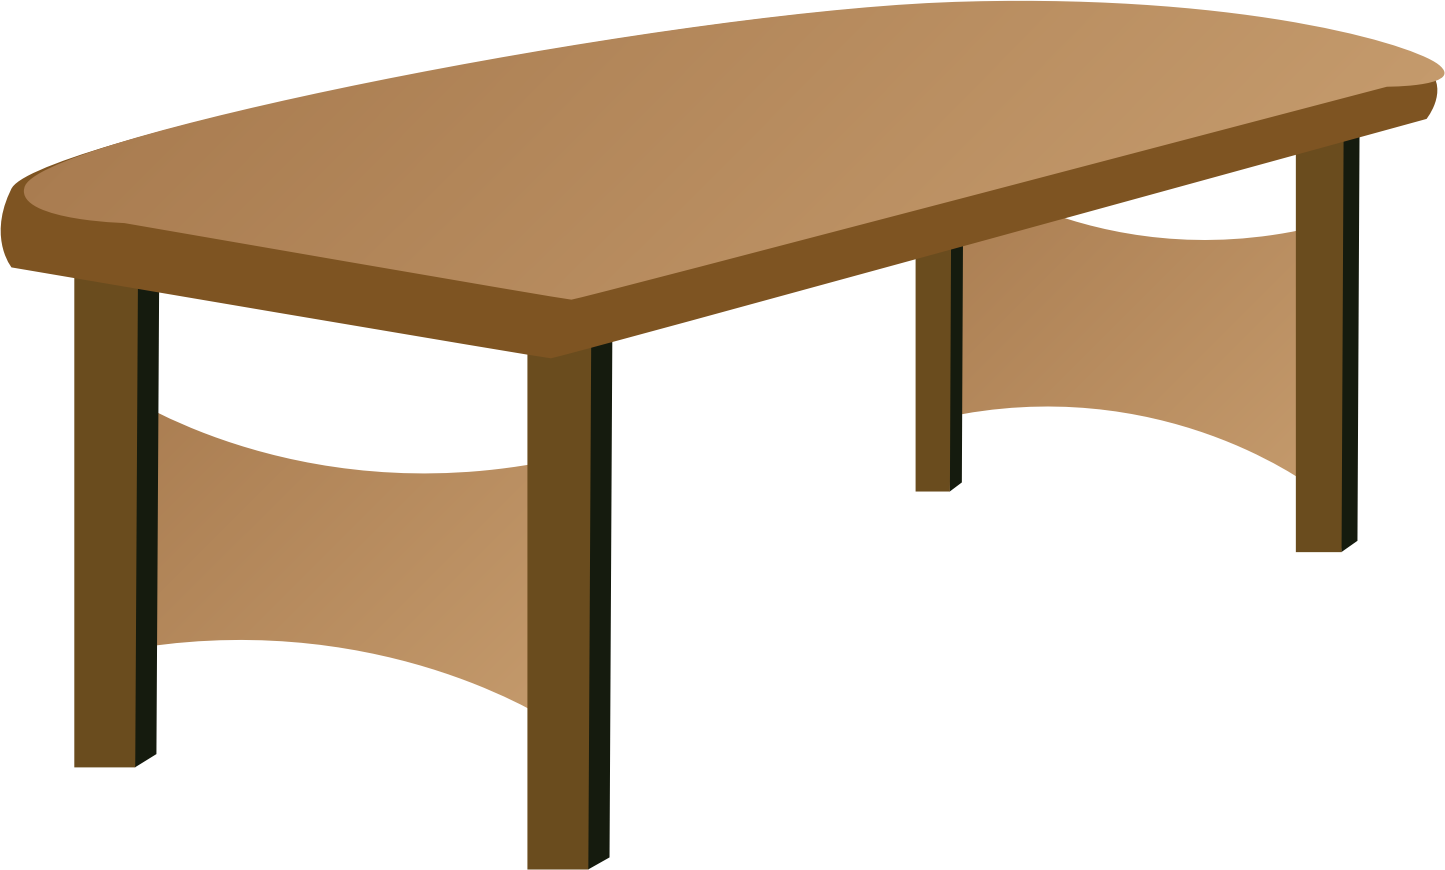 Bright Brown Table Clipart Free Image